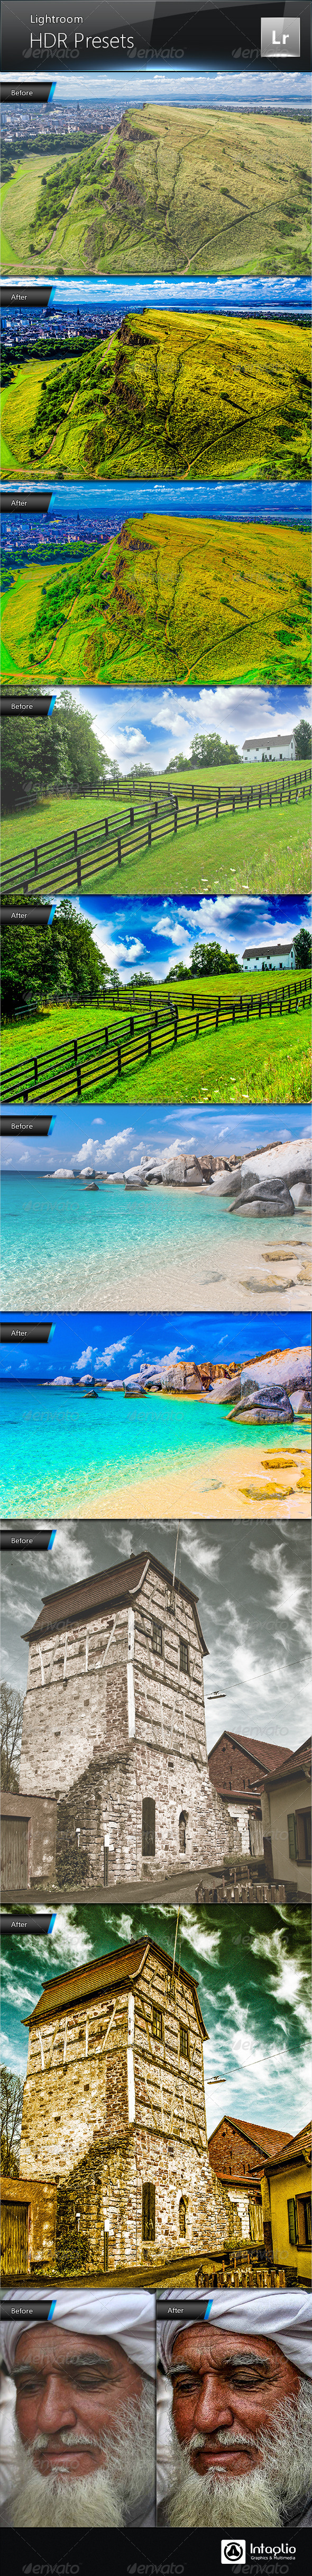 HDR Presets for Lightroom - Lightroom Presets Add-ons